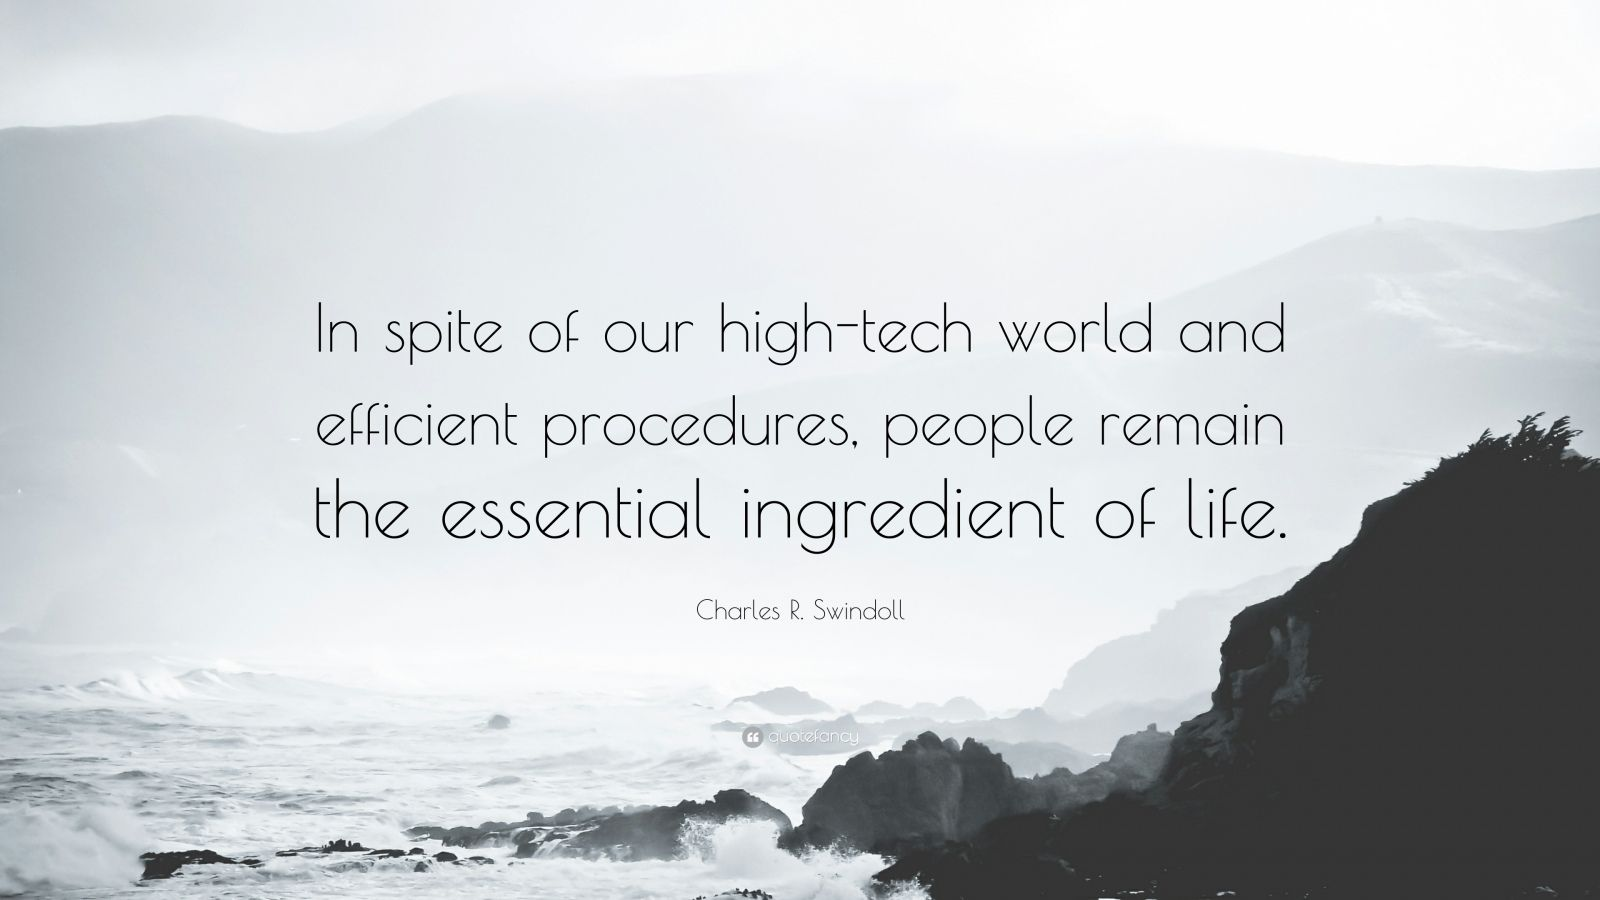 """Charles R. Swindoll Quote: """"In spite of our high-tech world and efficient procedures, people remain the essential ingredient of life."""""""